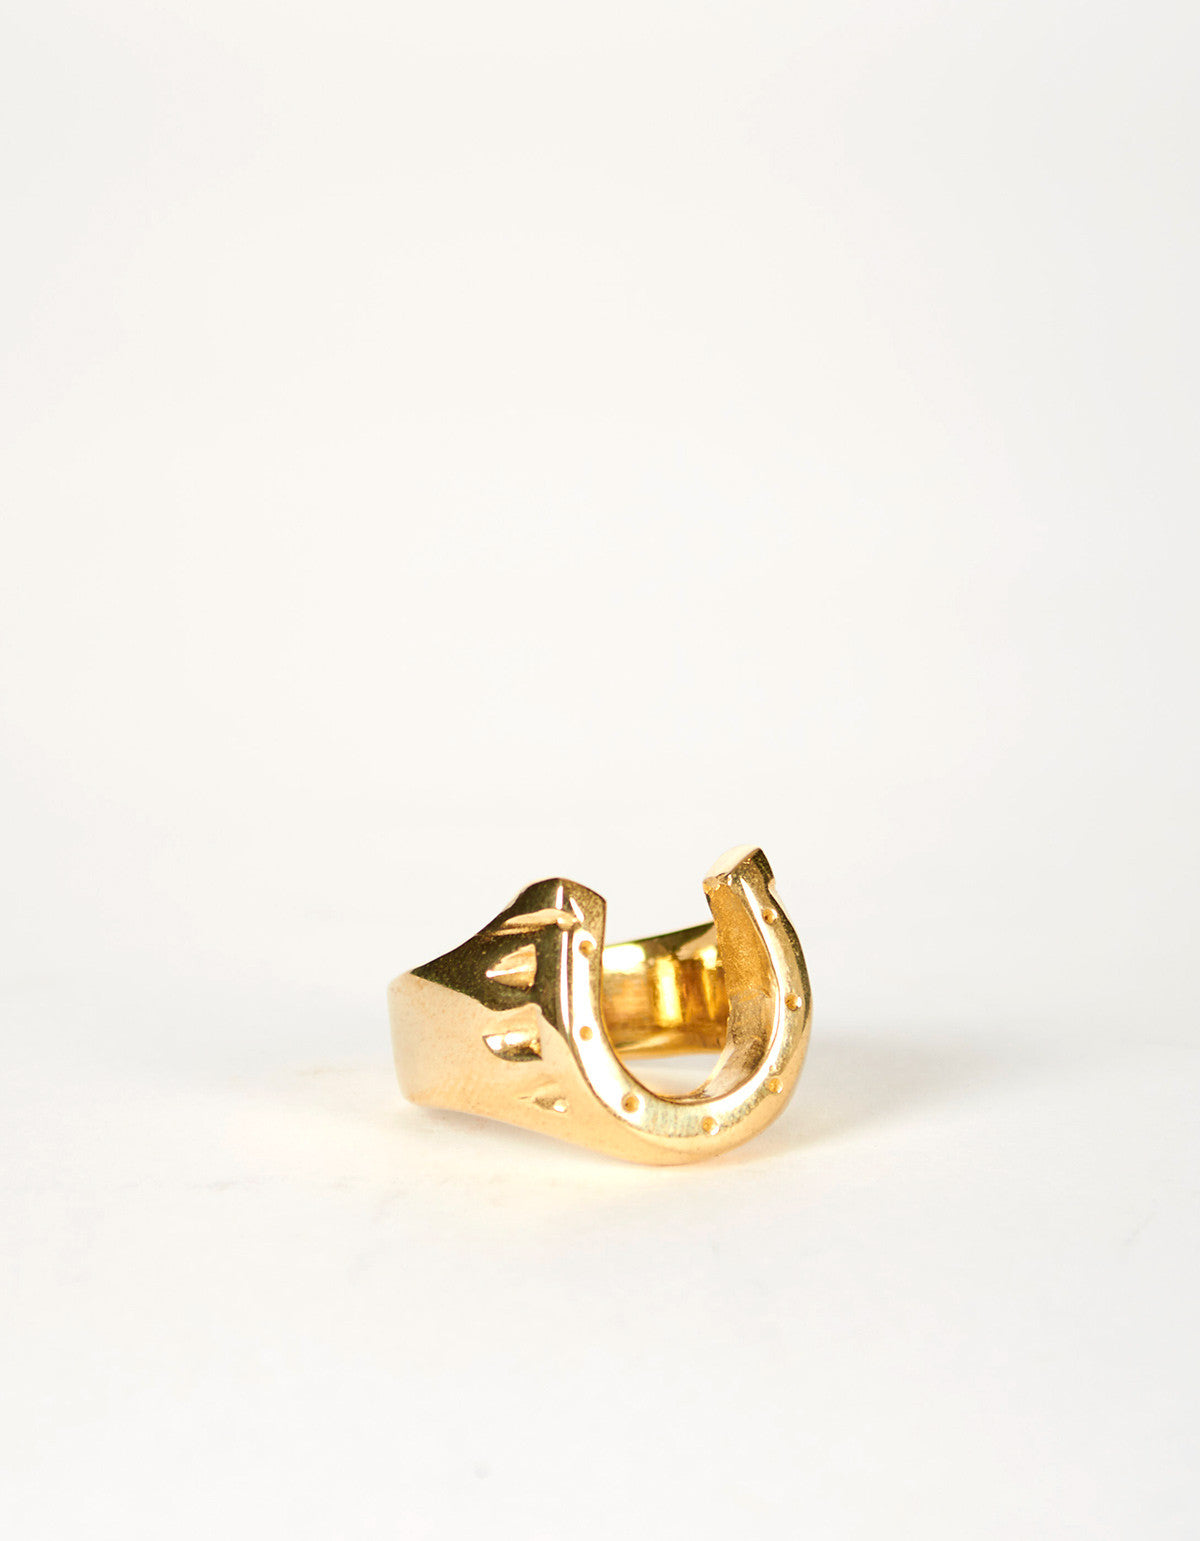 Jon Swinamer Horse Shoe Ring Bronze - Still Life - 4